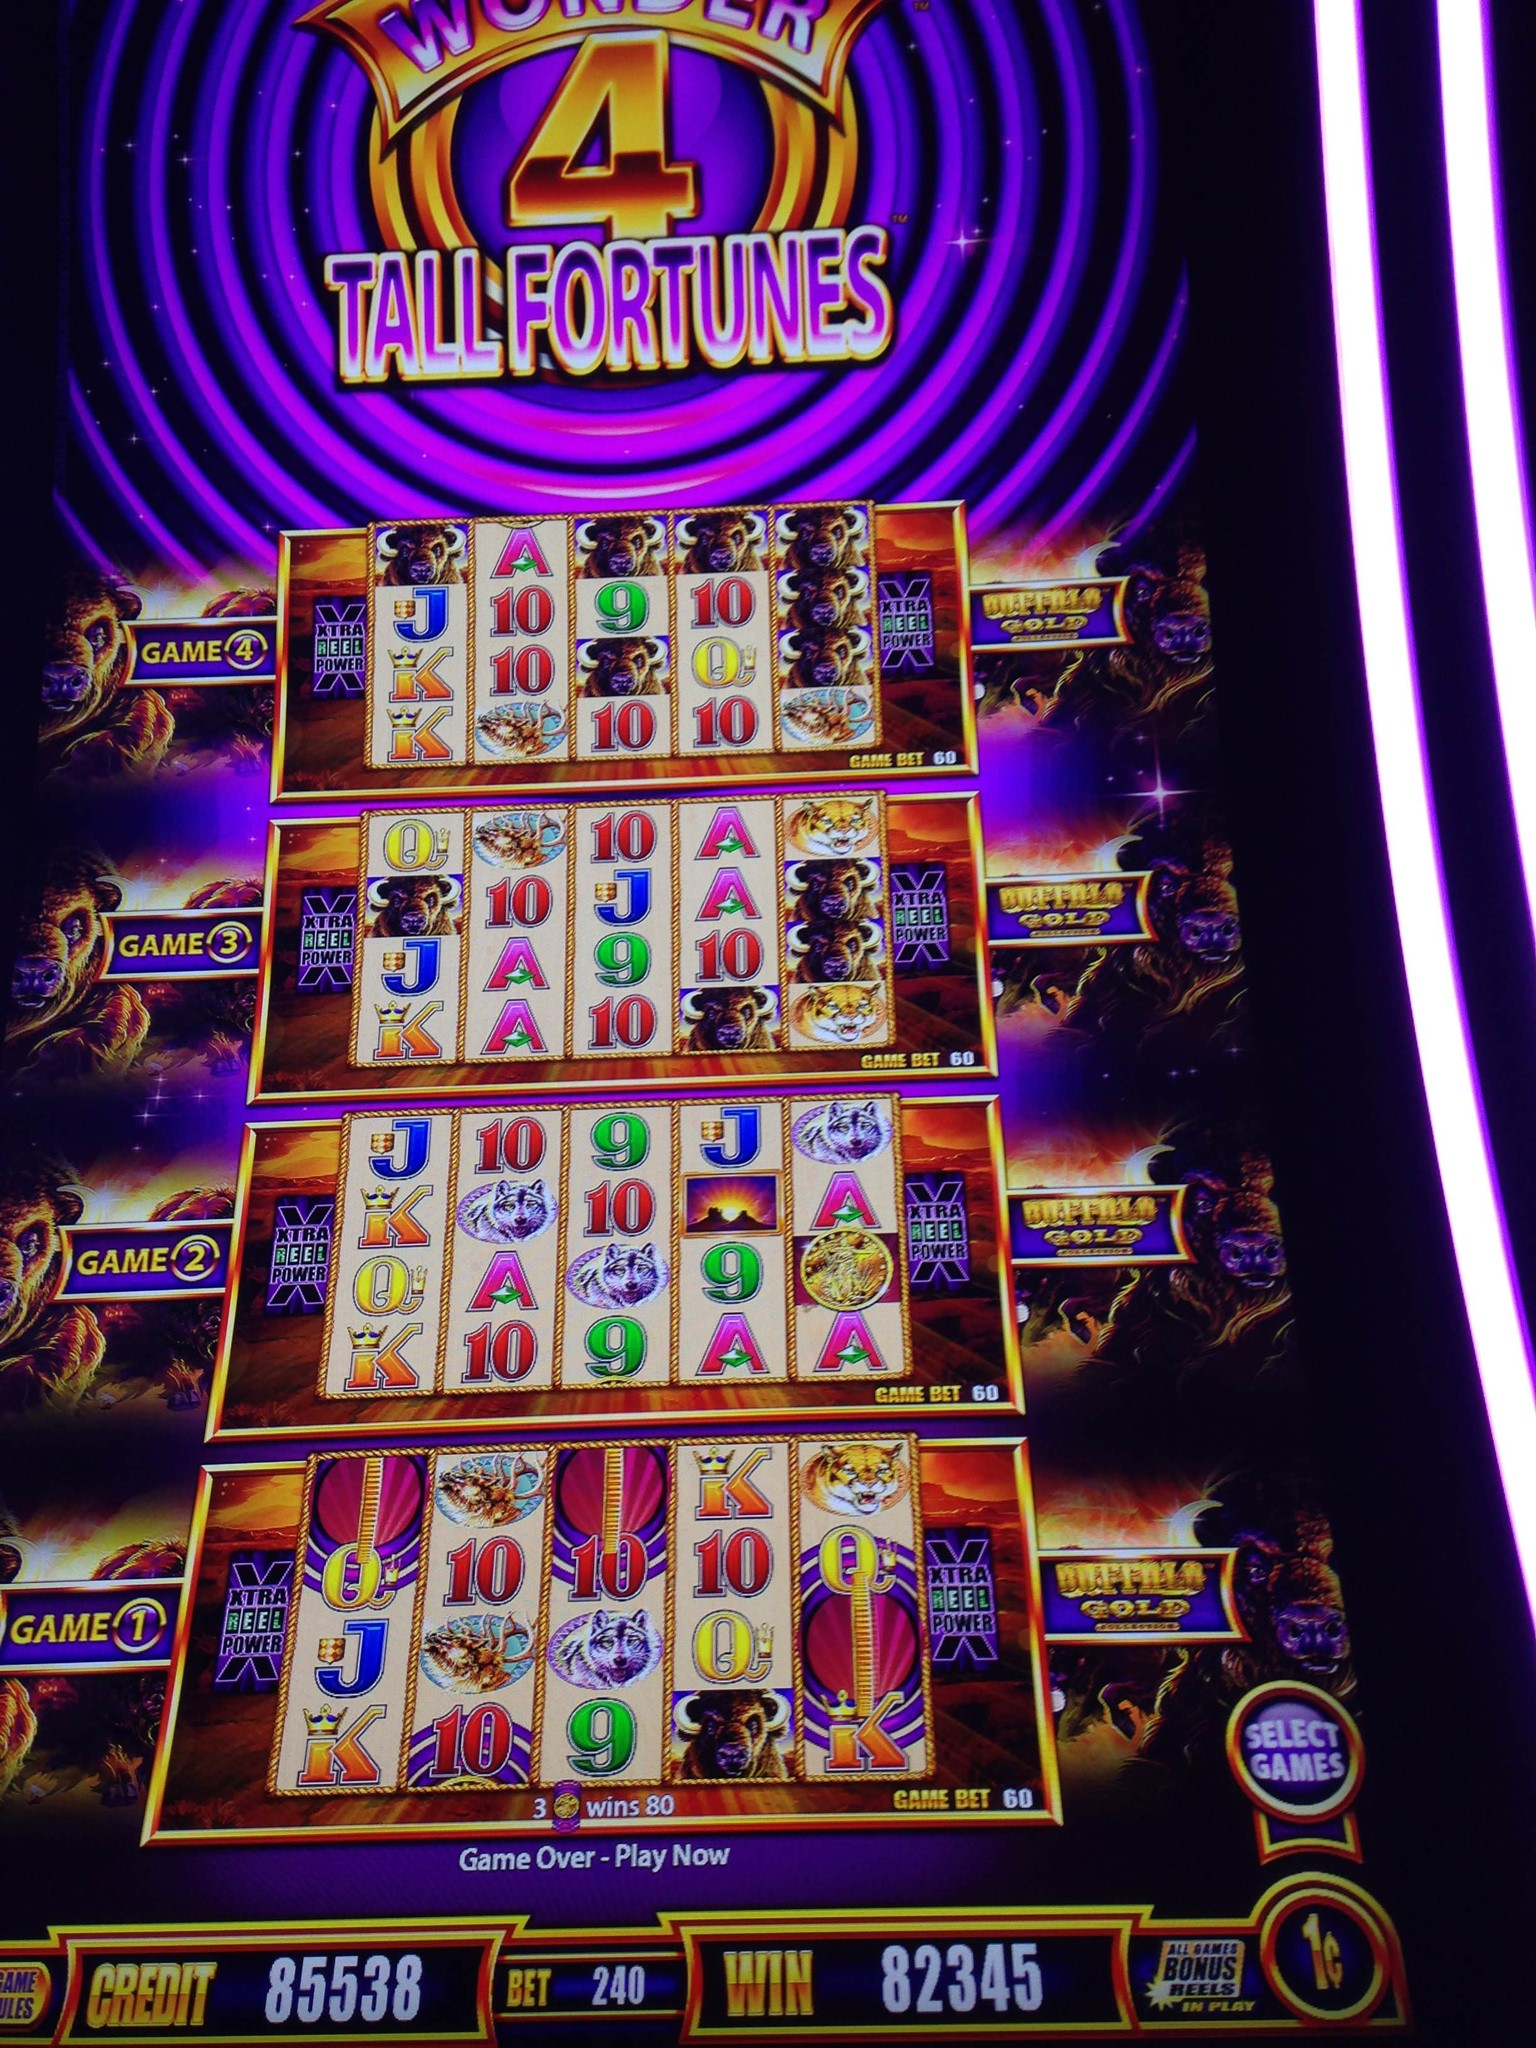 Wonder 4 Tall Fortune image